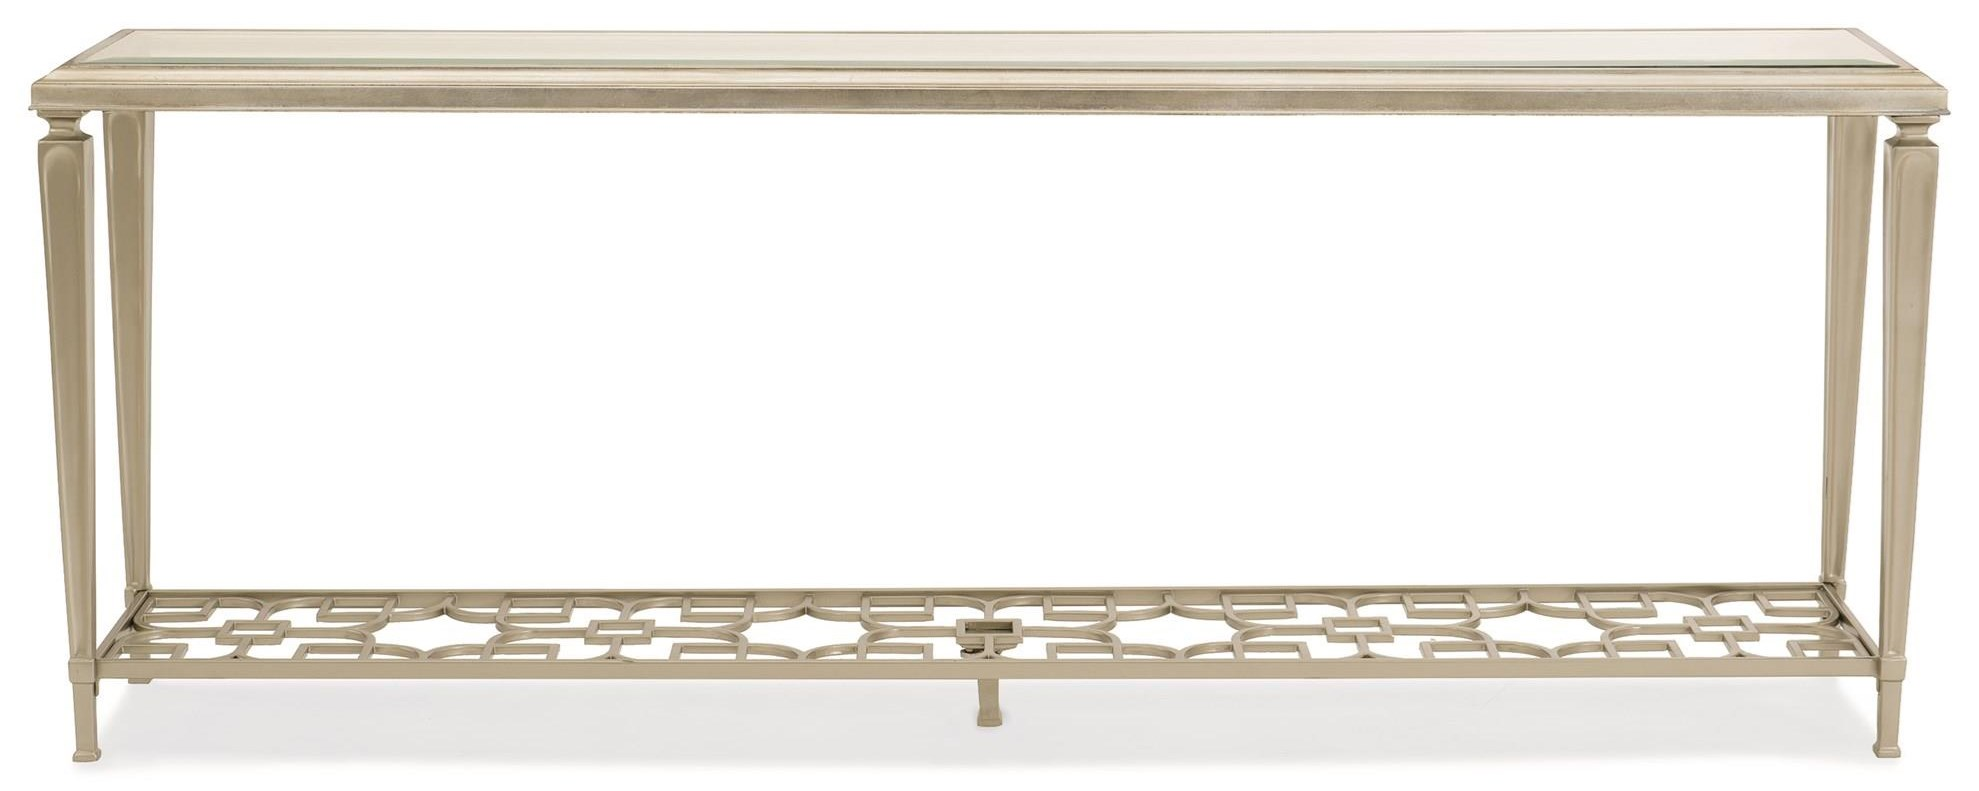 Caracole Classic Console Table by Caracole at Baer's Furniture